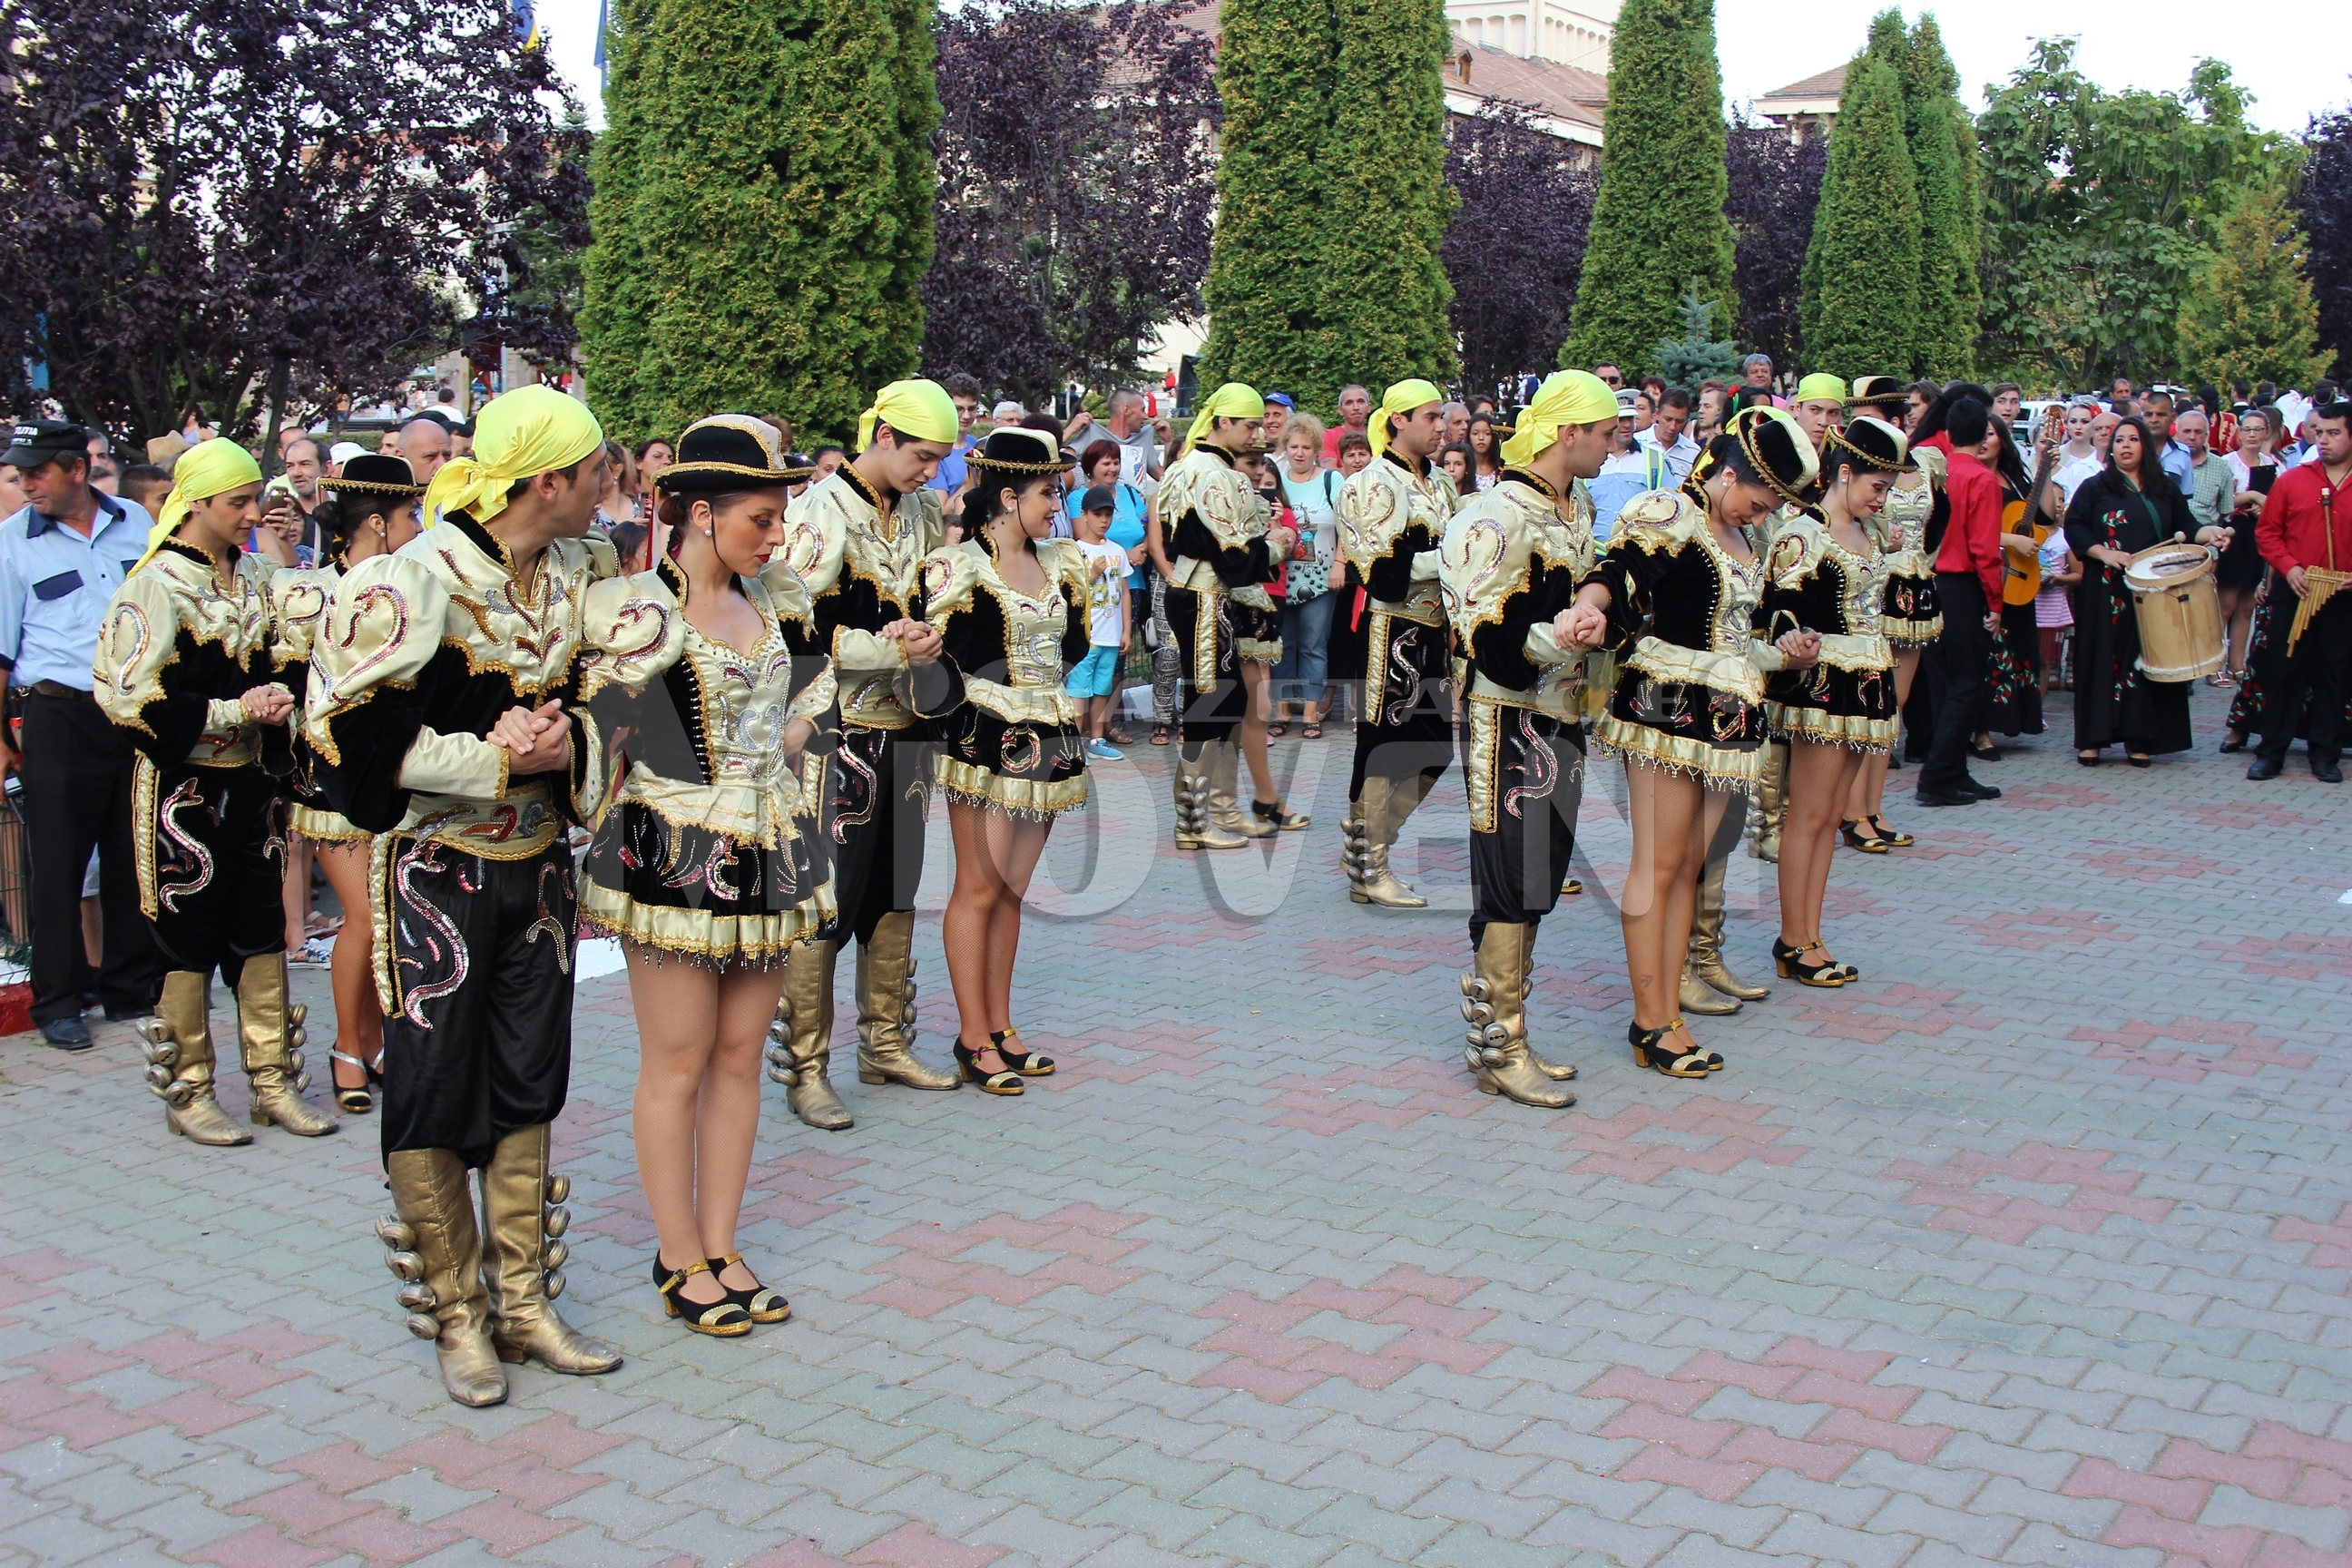 festivalul-international-de-folclor-carpati-mioveni-11-august-2016 (33)